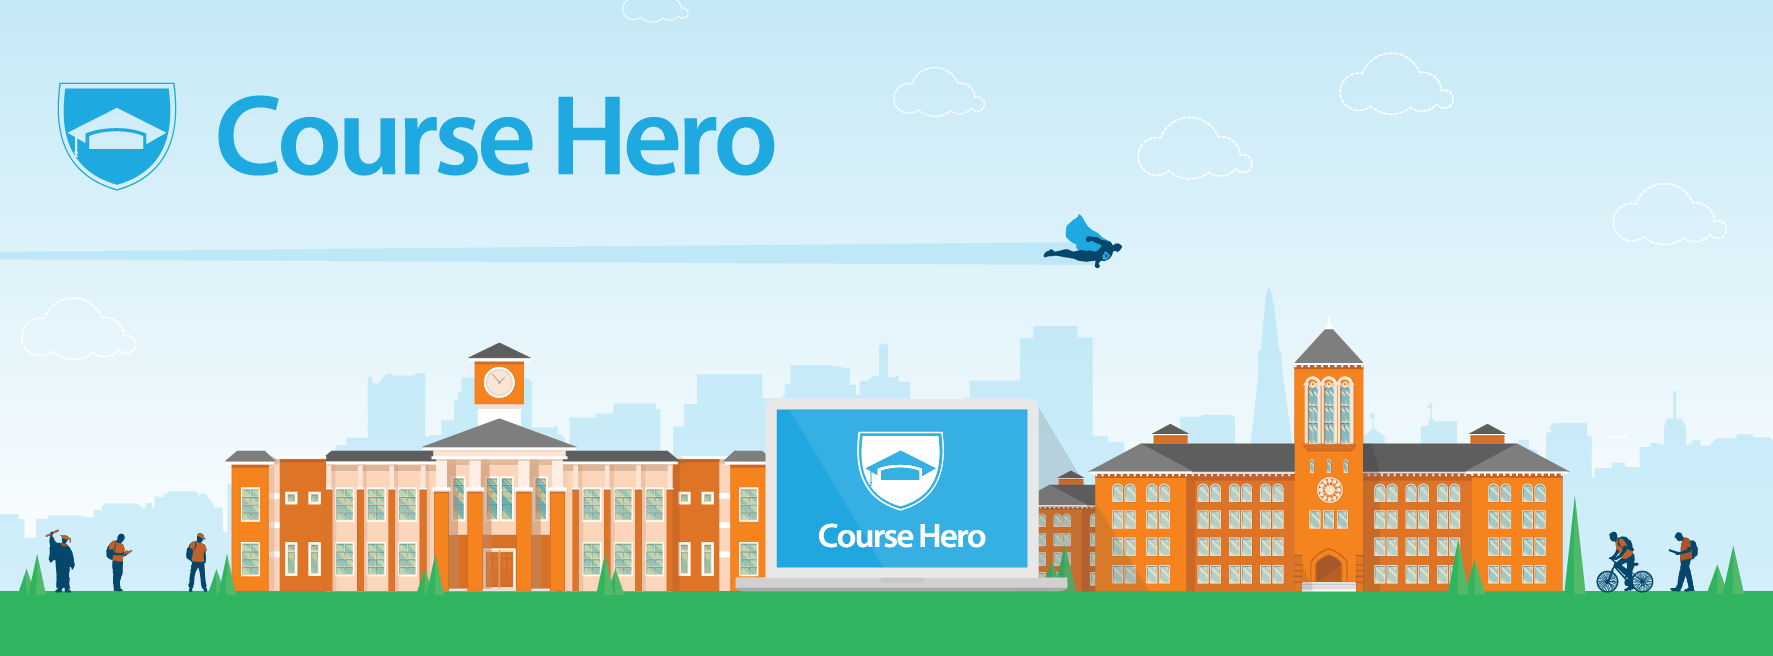 About Course Hero Homepage